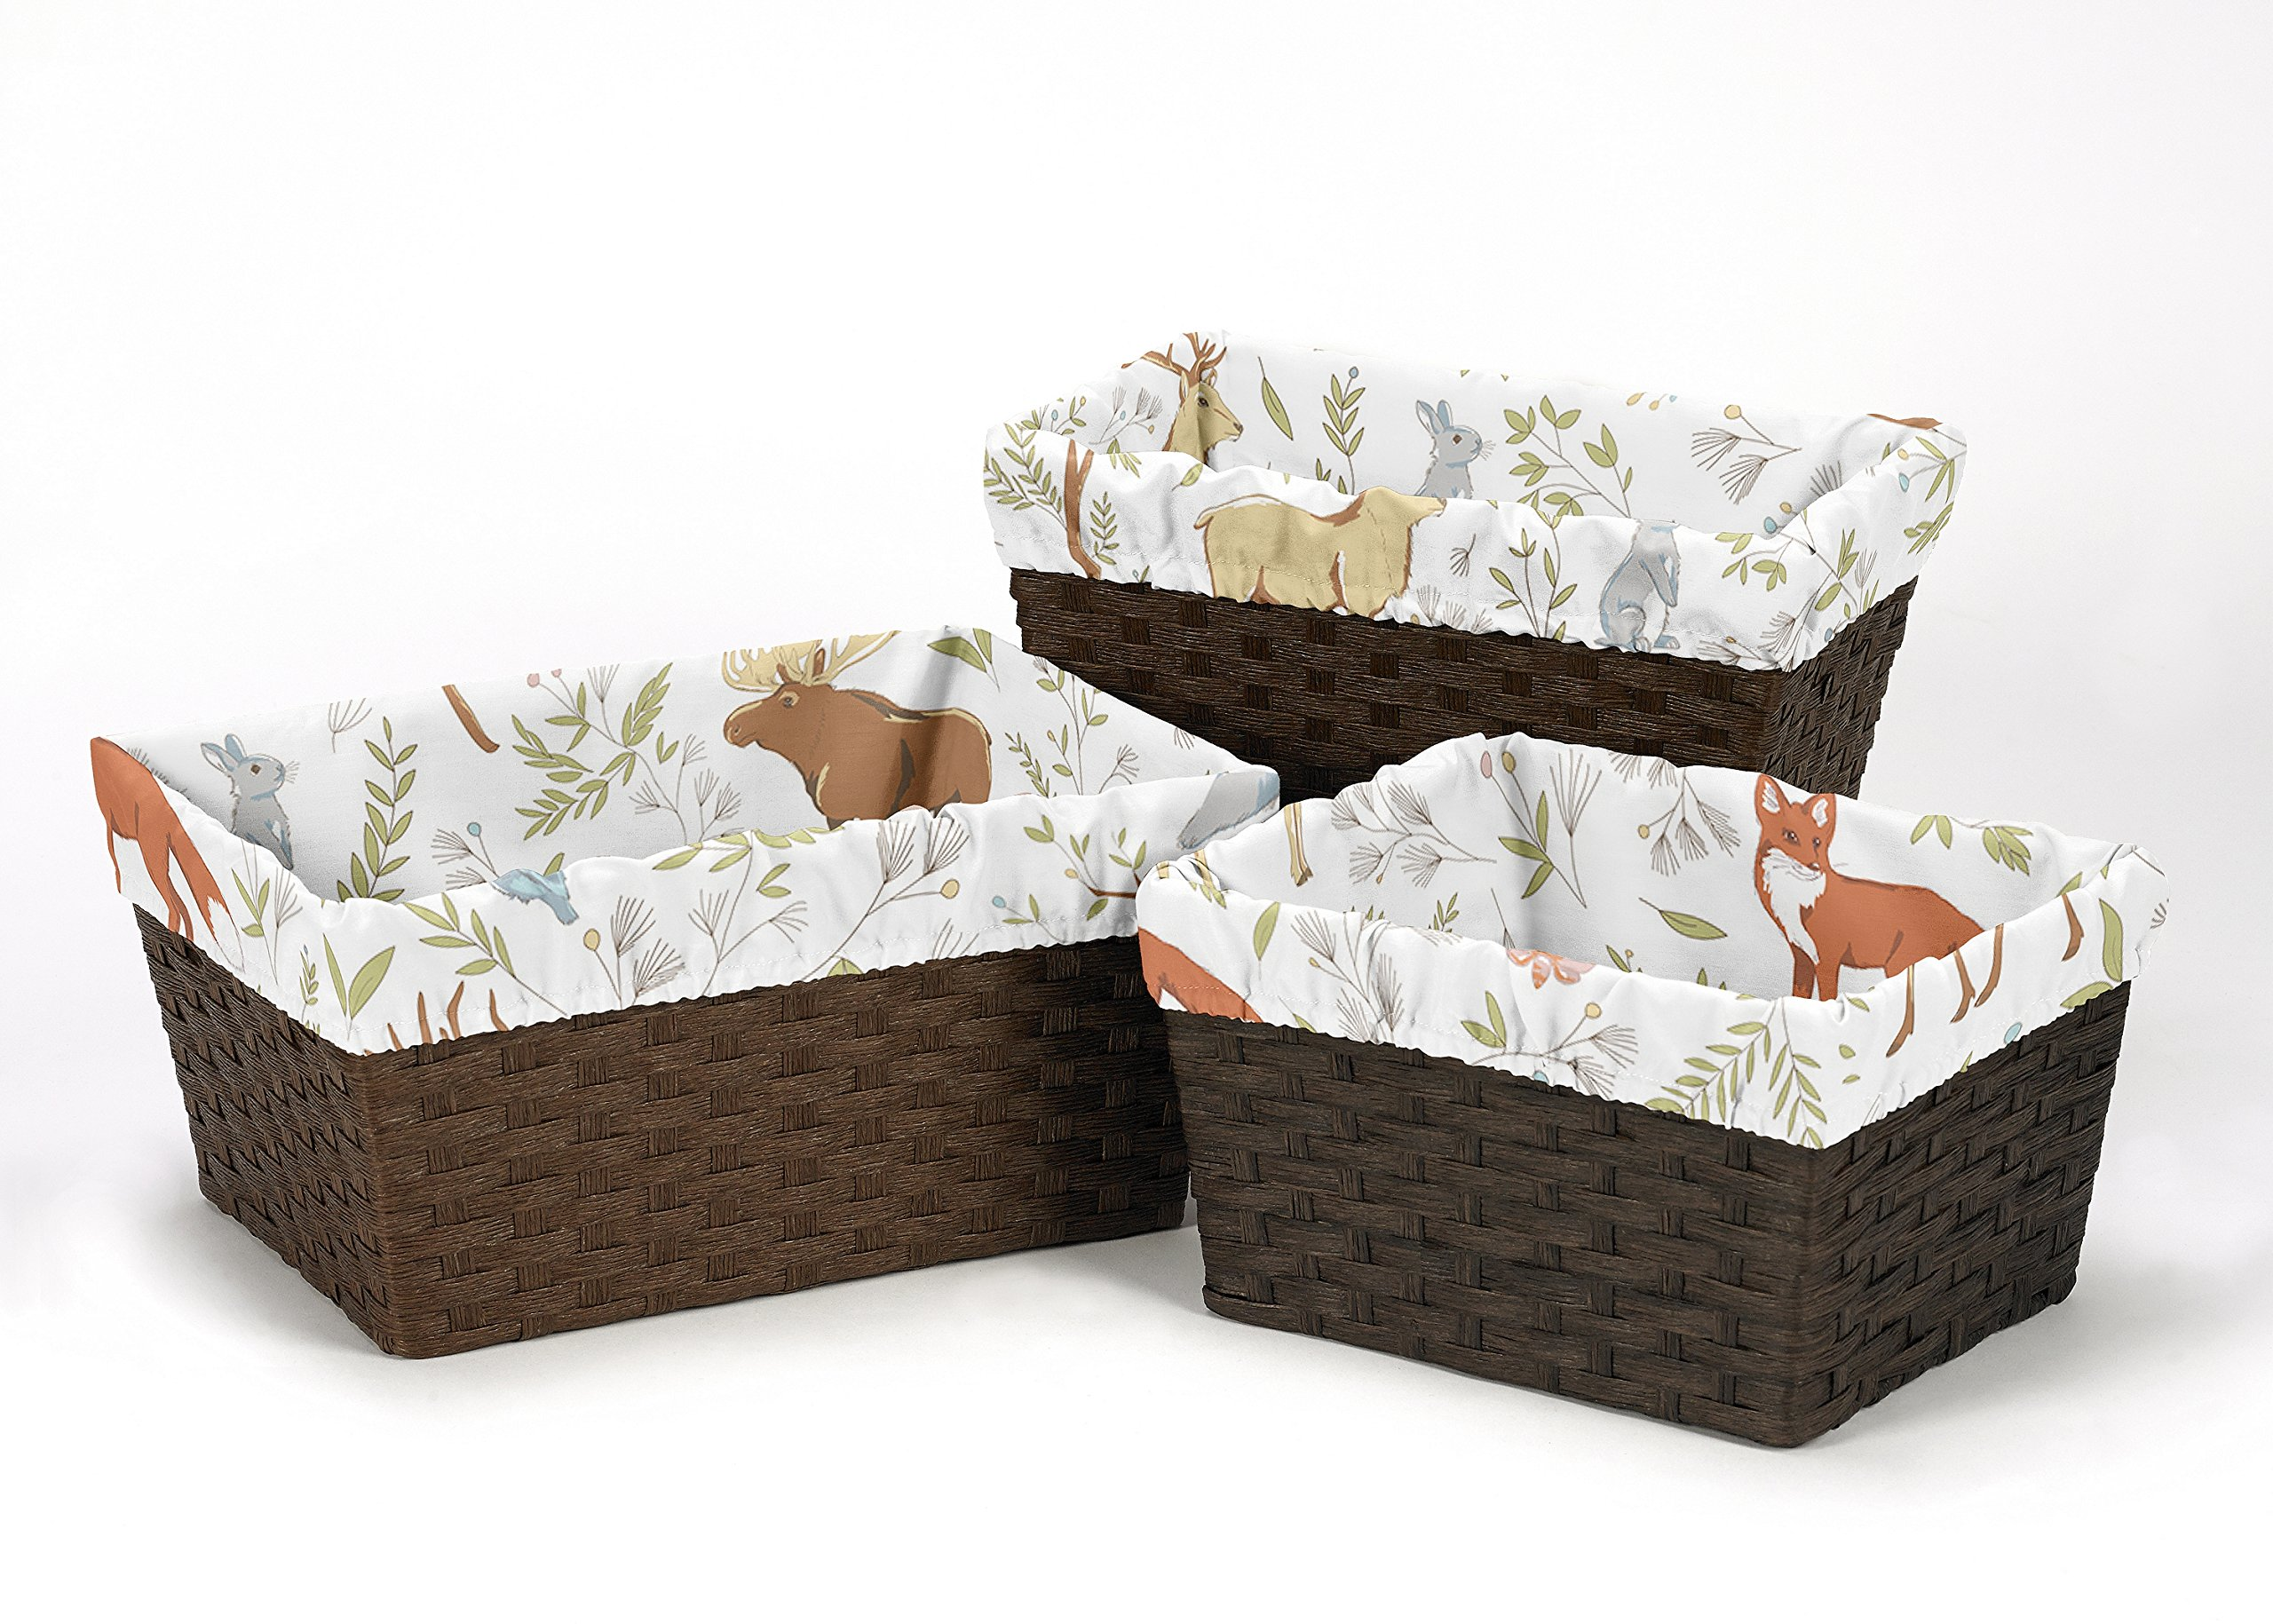 Sweet Jojo Designs 3-Piece Fits Most Basket Liners for Woodland Animal Toile Bedding Sets